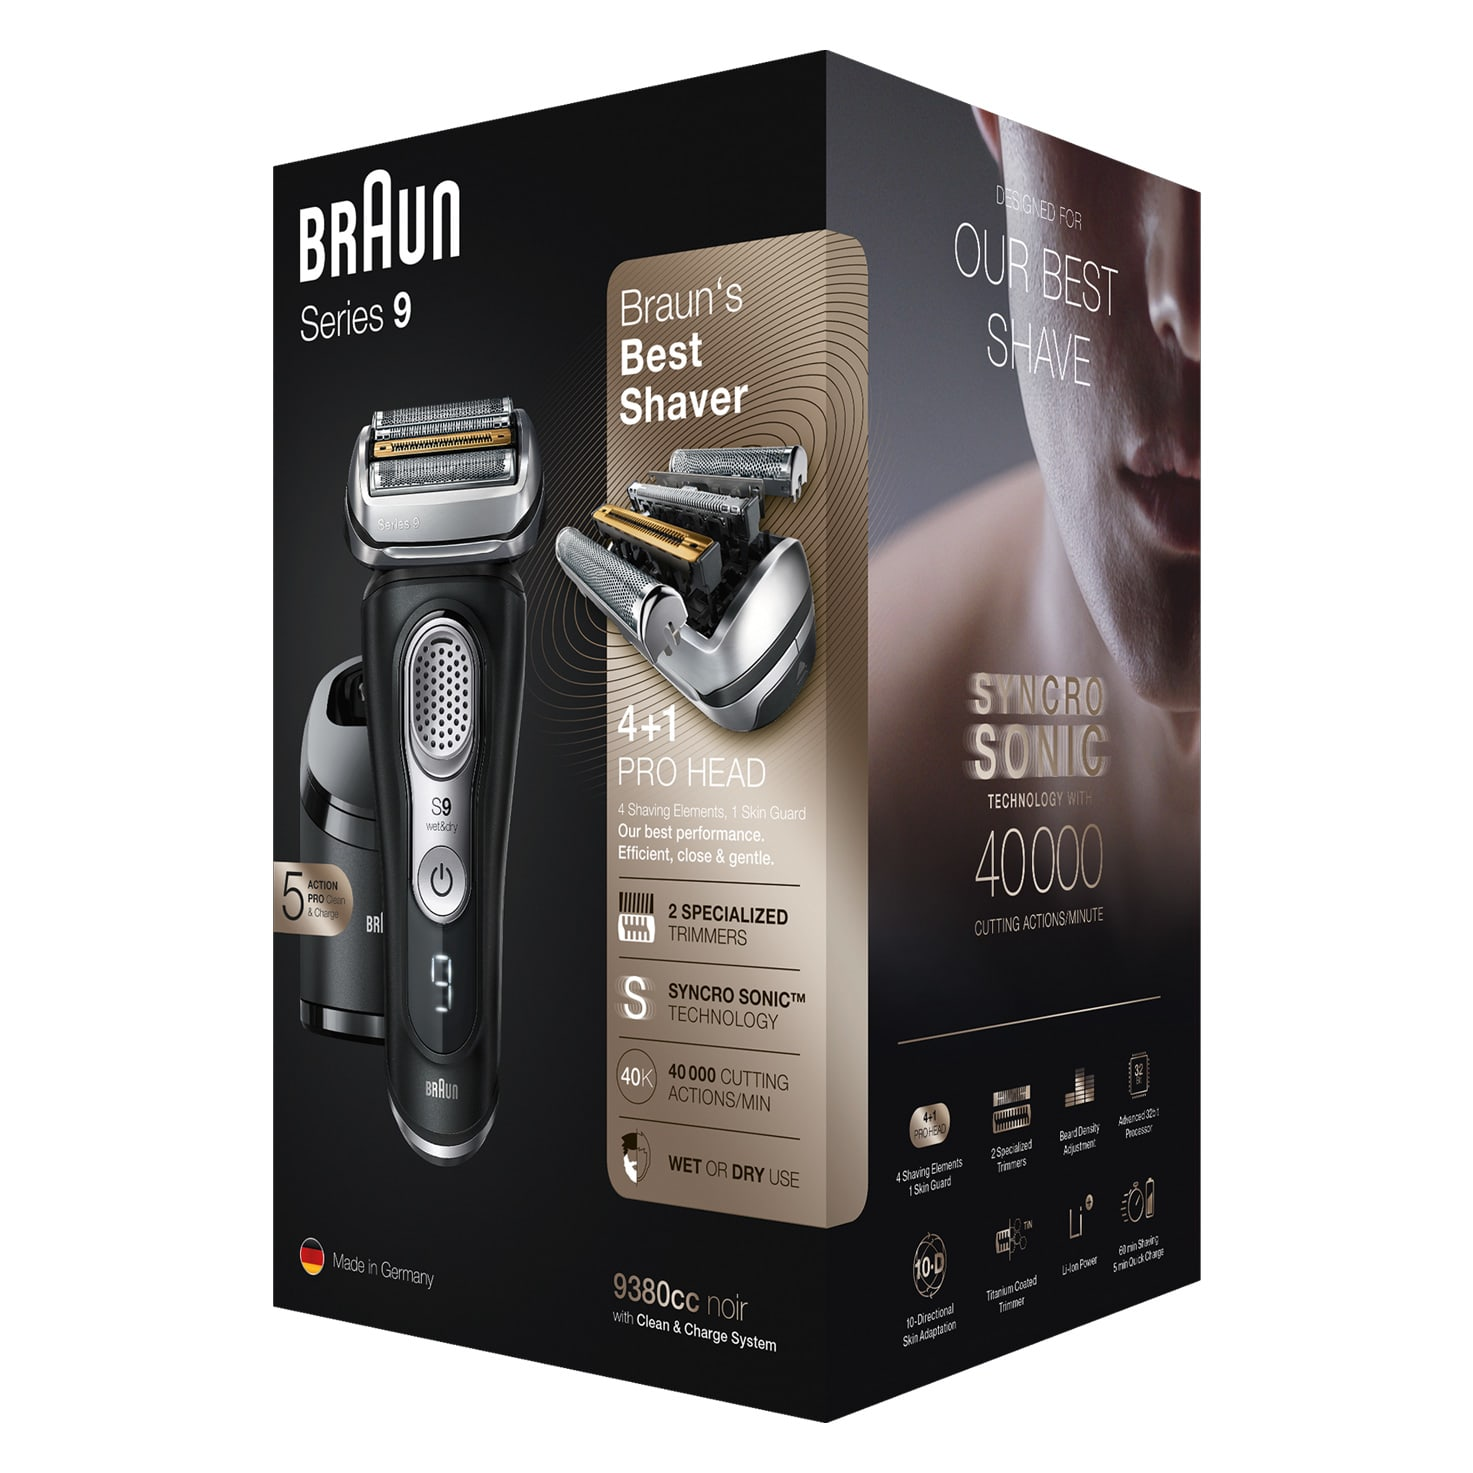 Series 9 9380cc shaver - Packaging